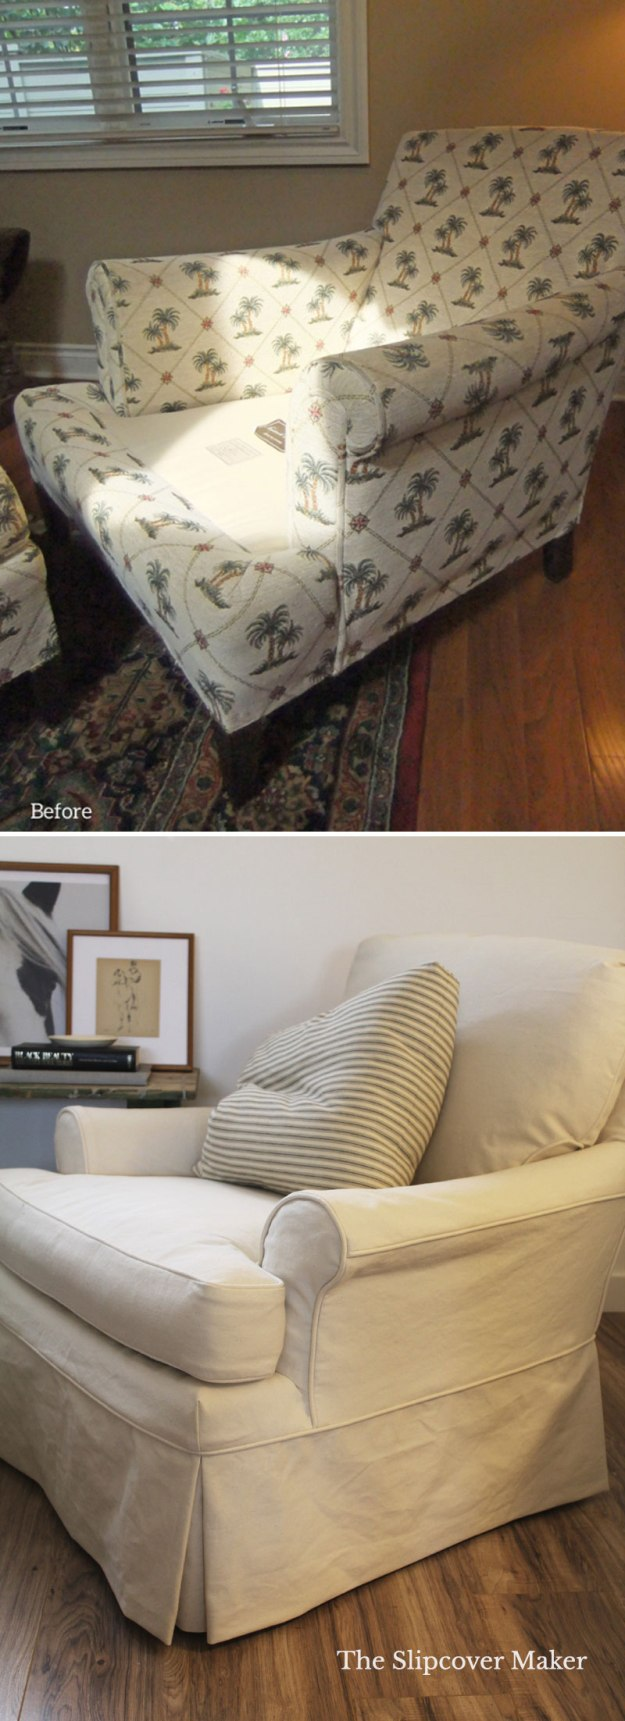 Denim Slipcover Makeover for Old Chair